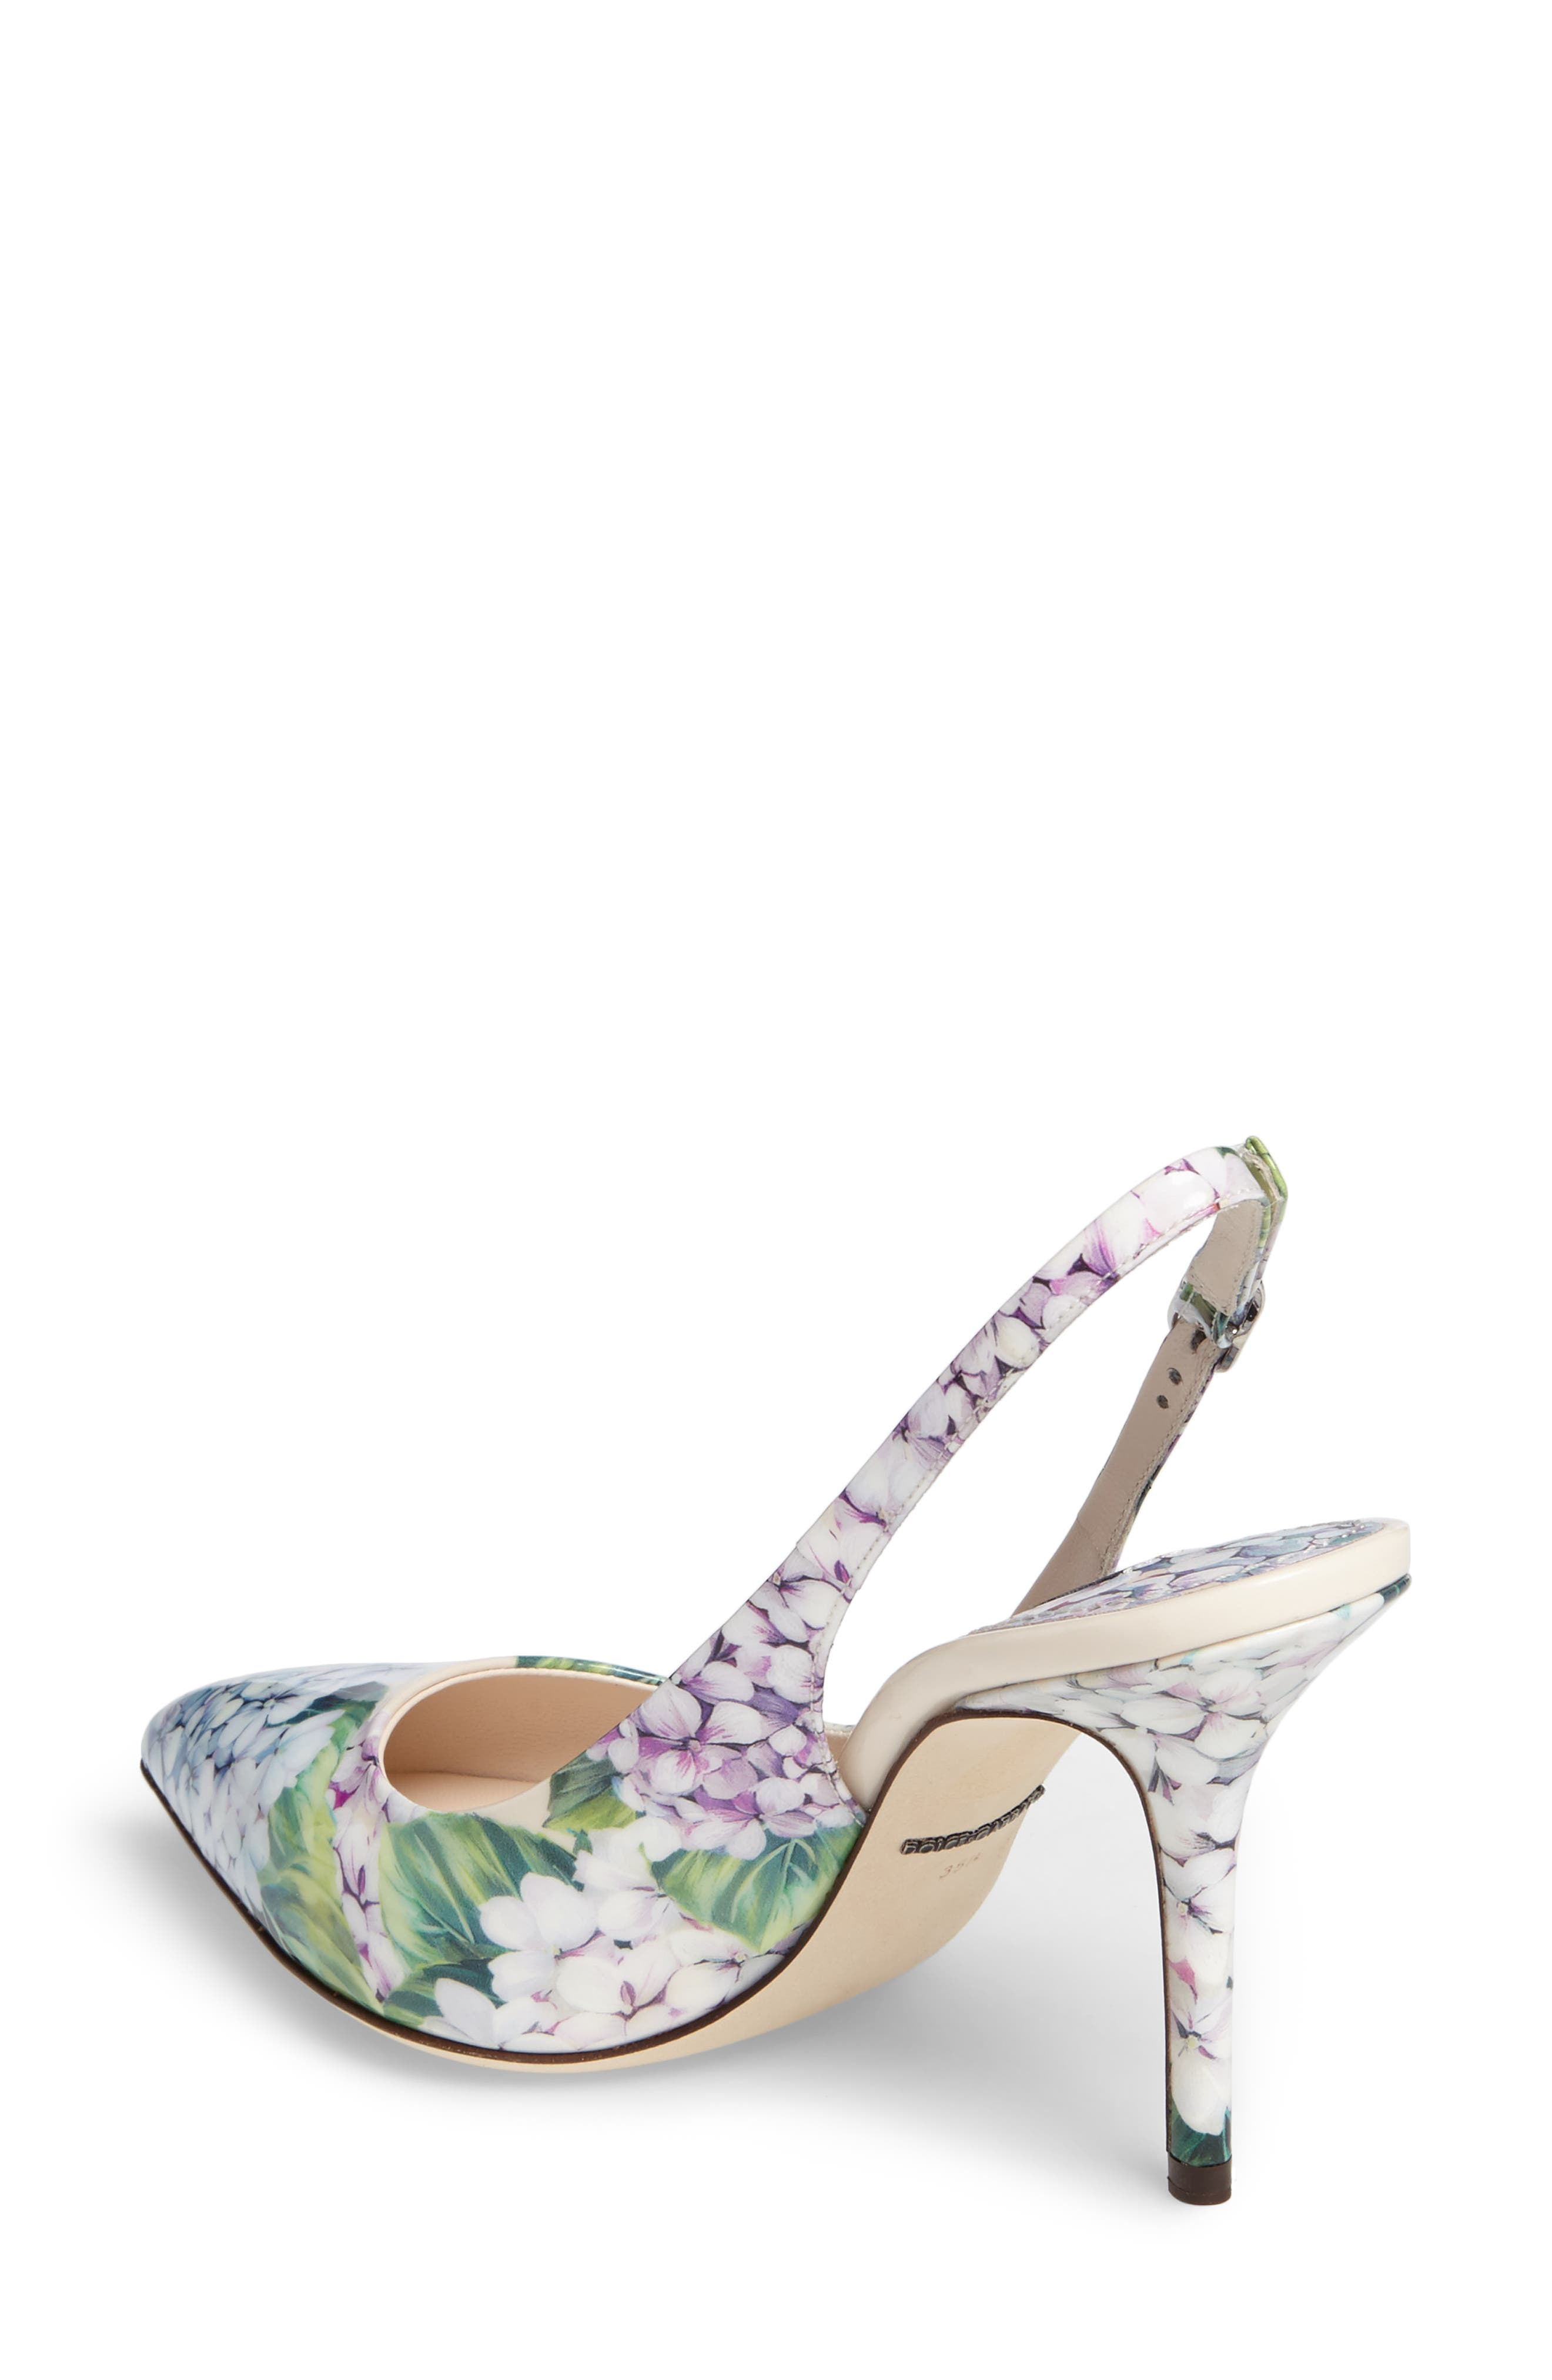 Hydrangea Slingback Sandal,                             Alternate thumbnail 2, color,                             101